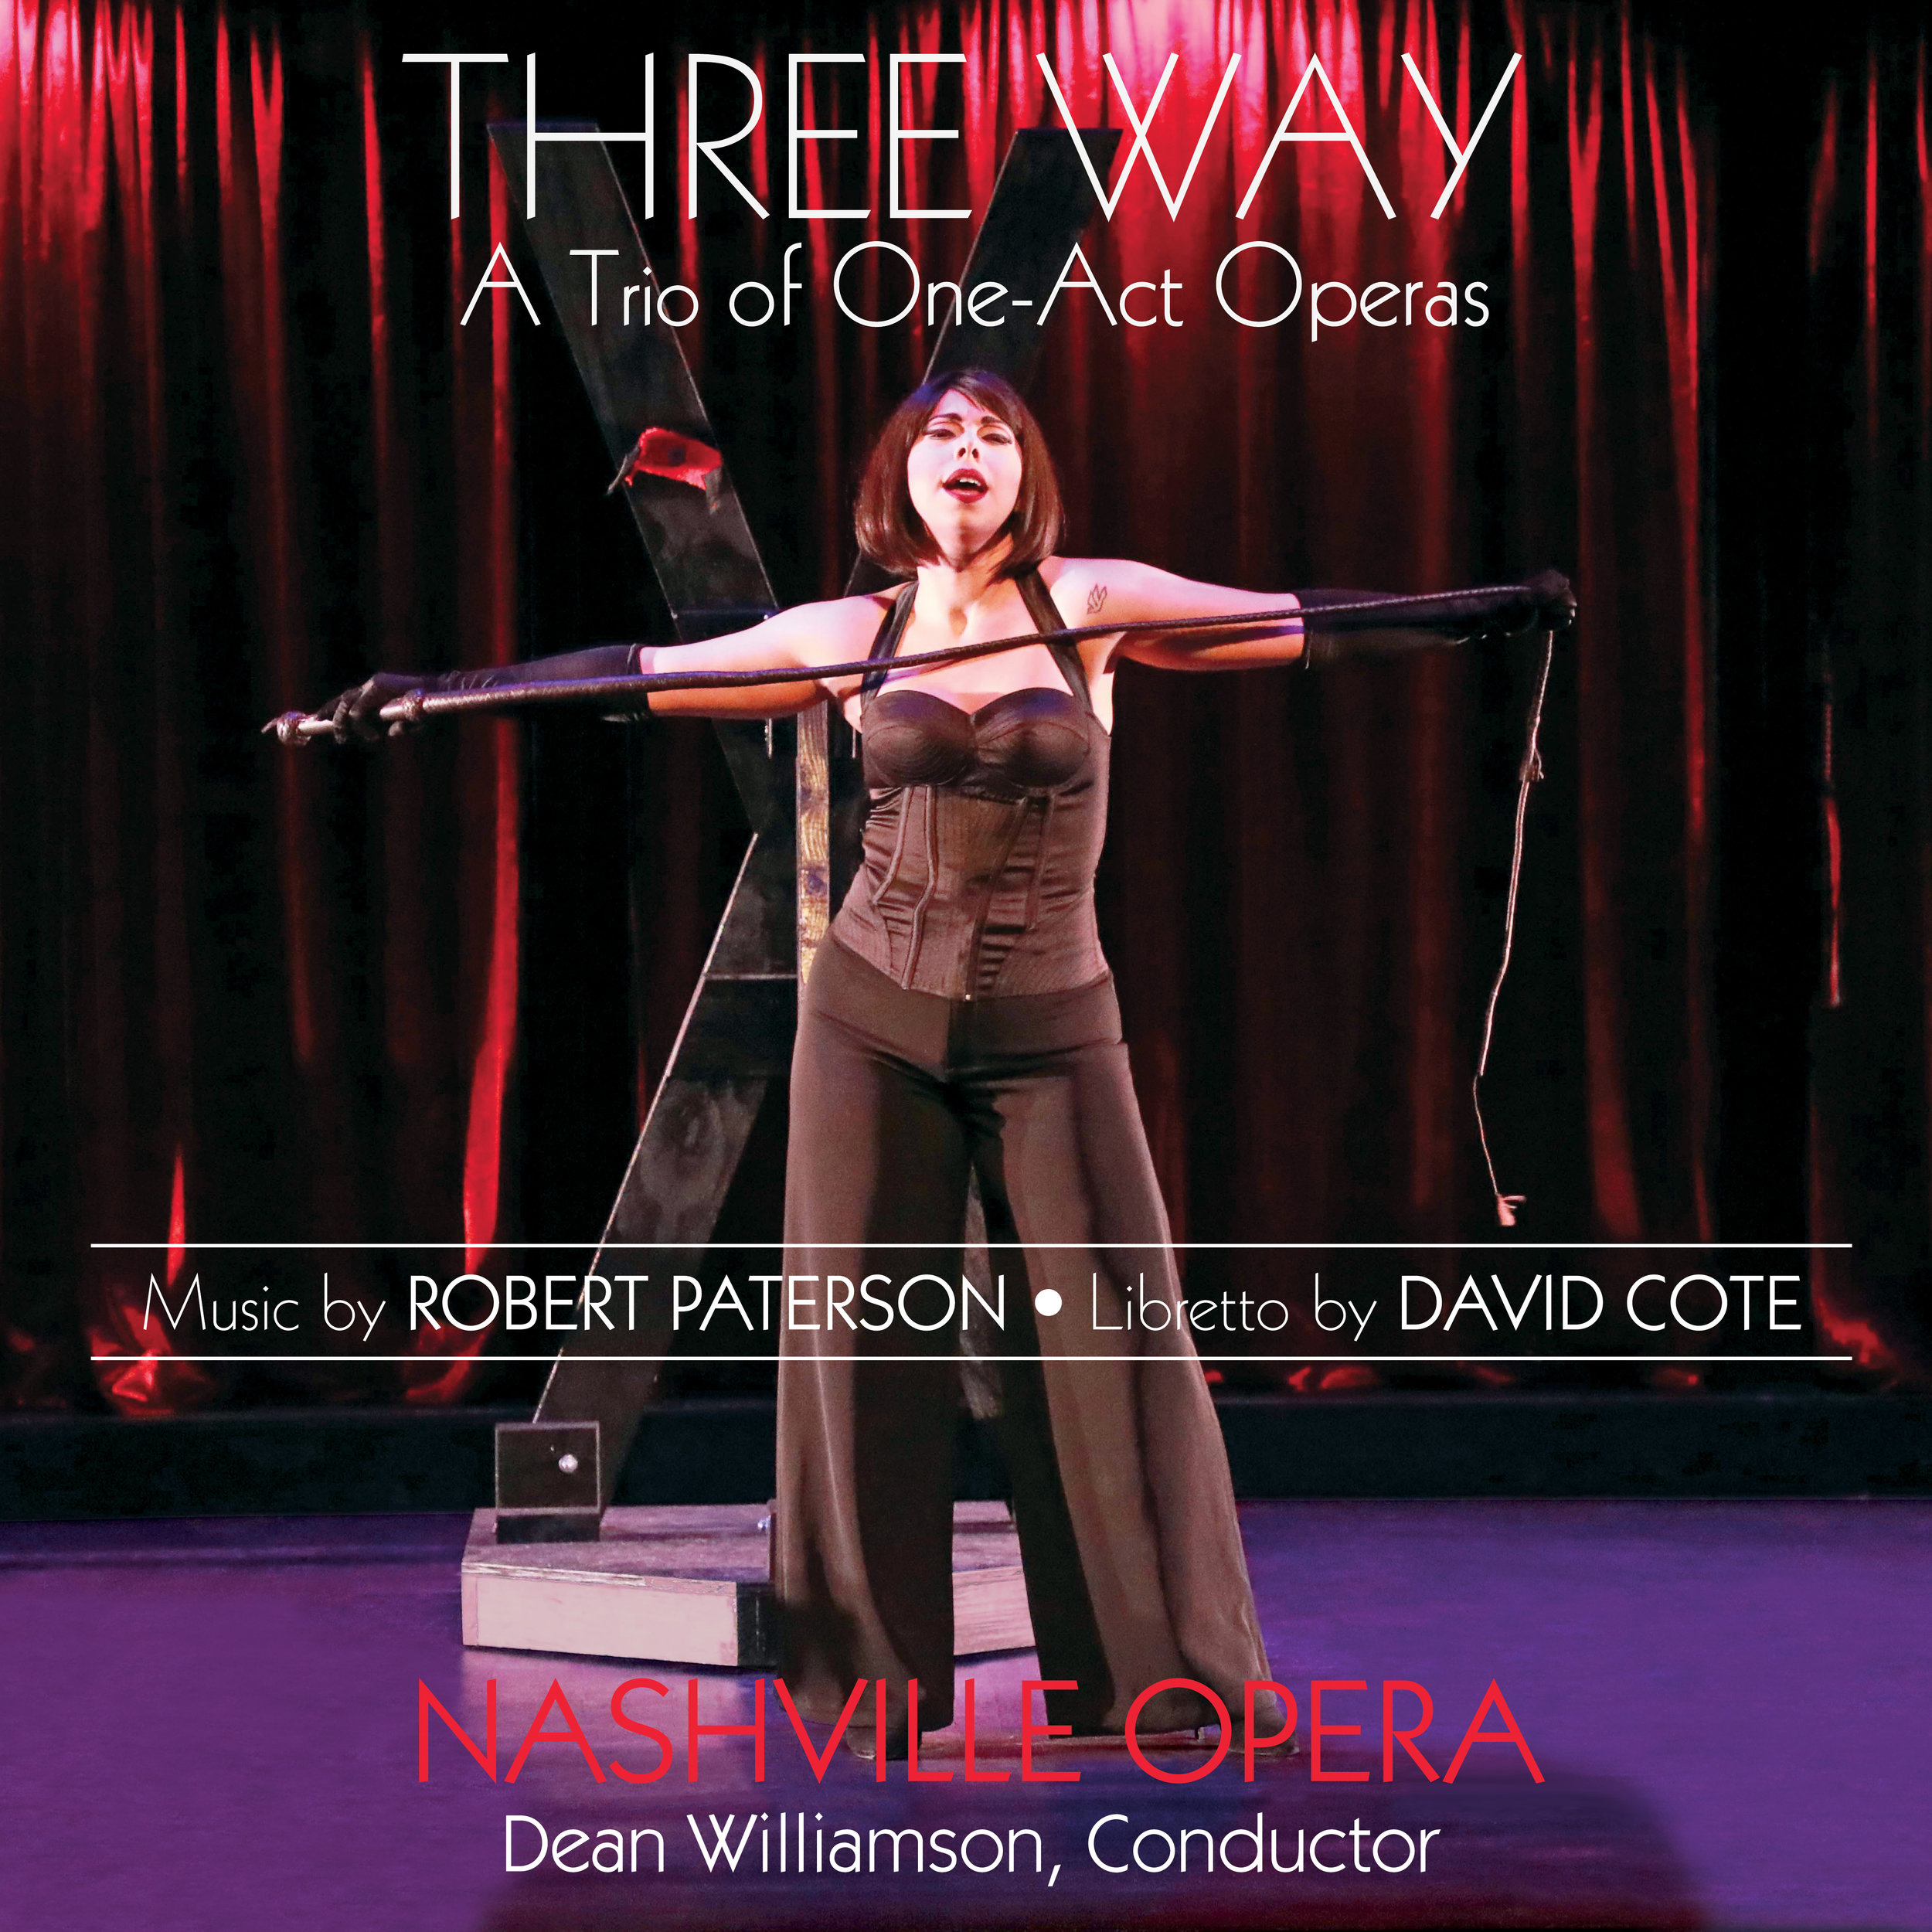 Three-Way-Opera-Robert-Paterson-David-Cote_Front cover_Digital.jpg